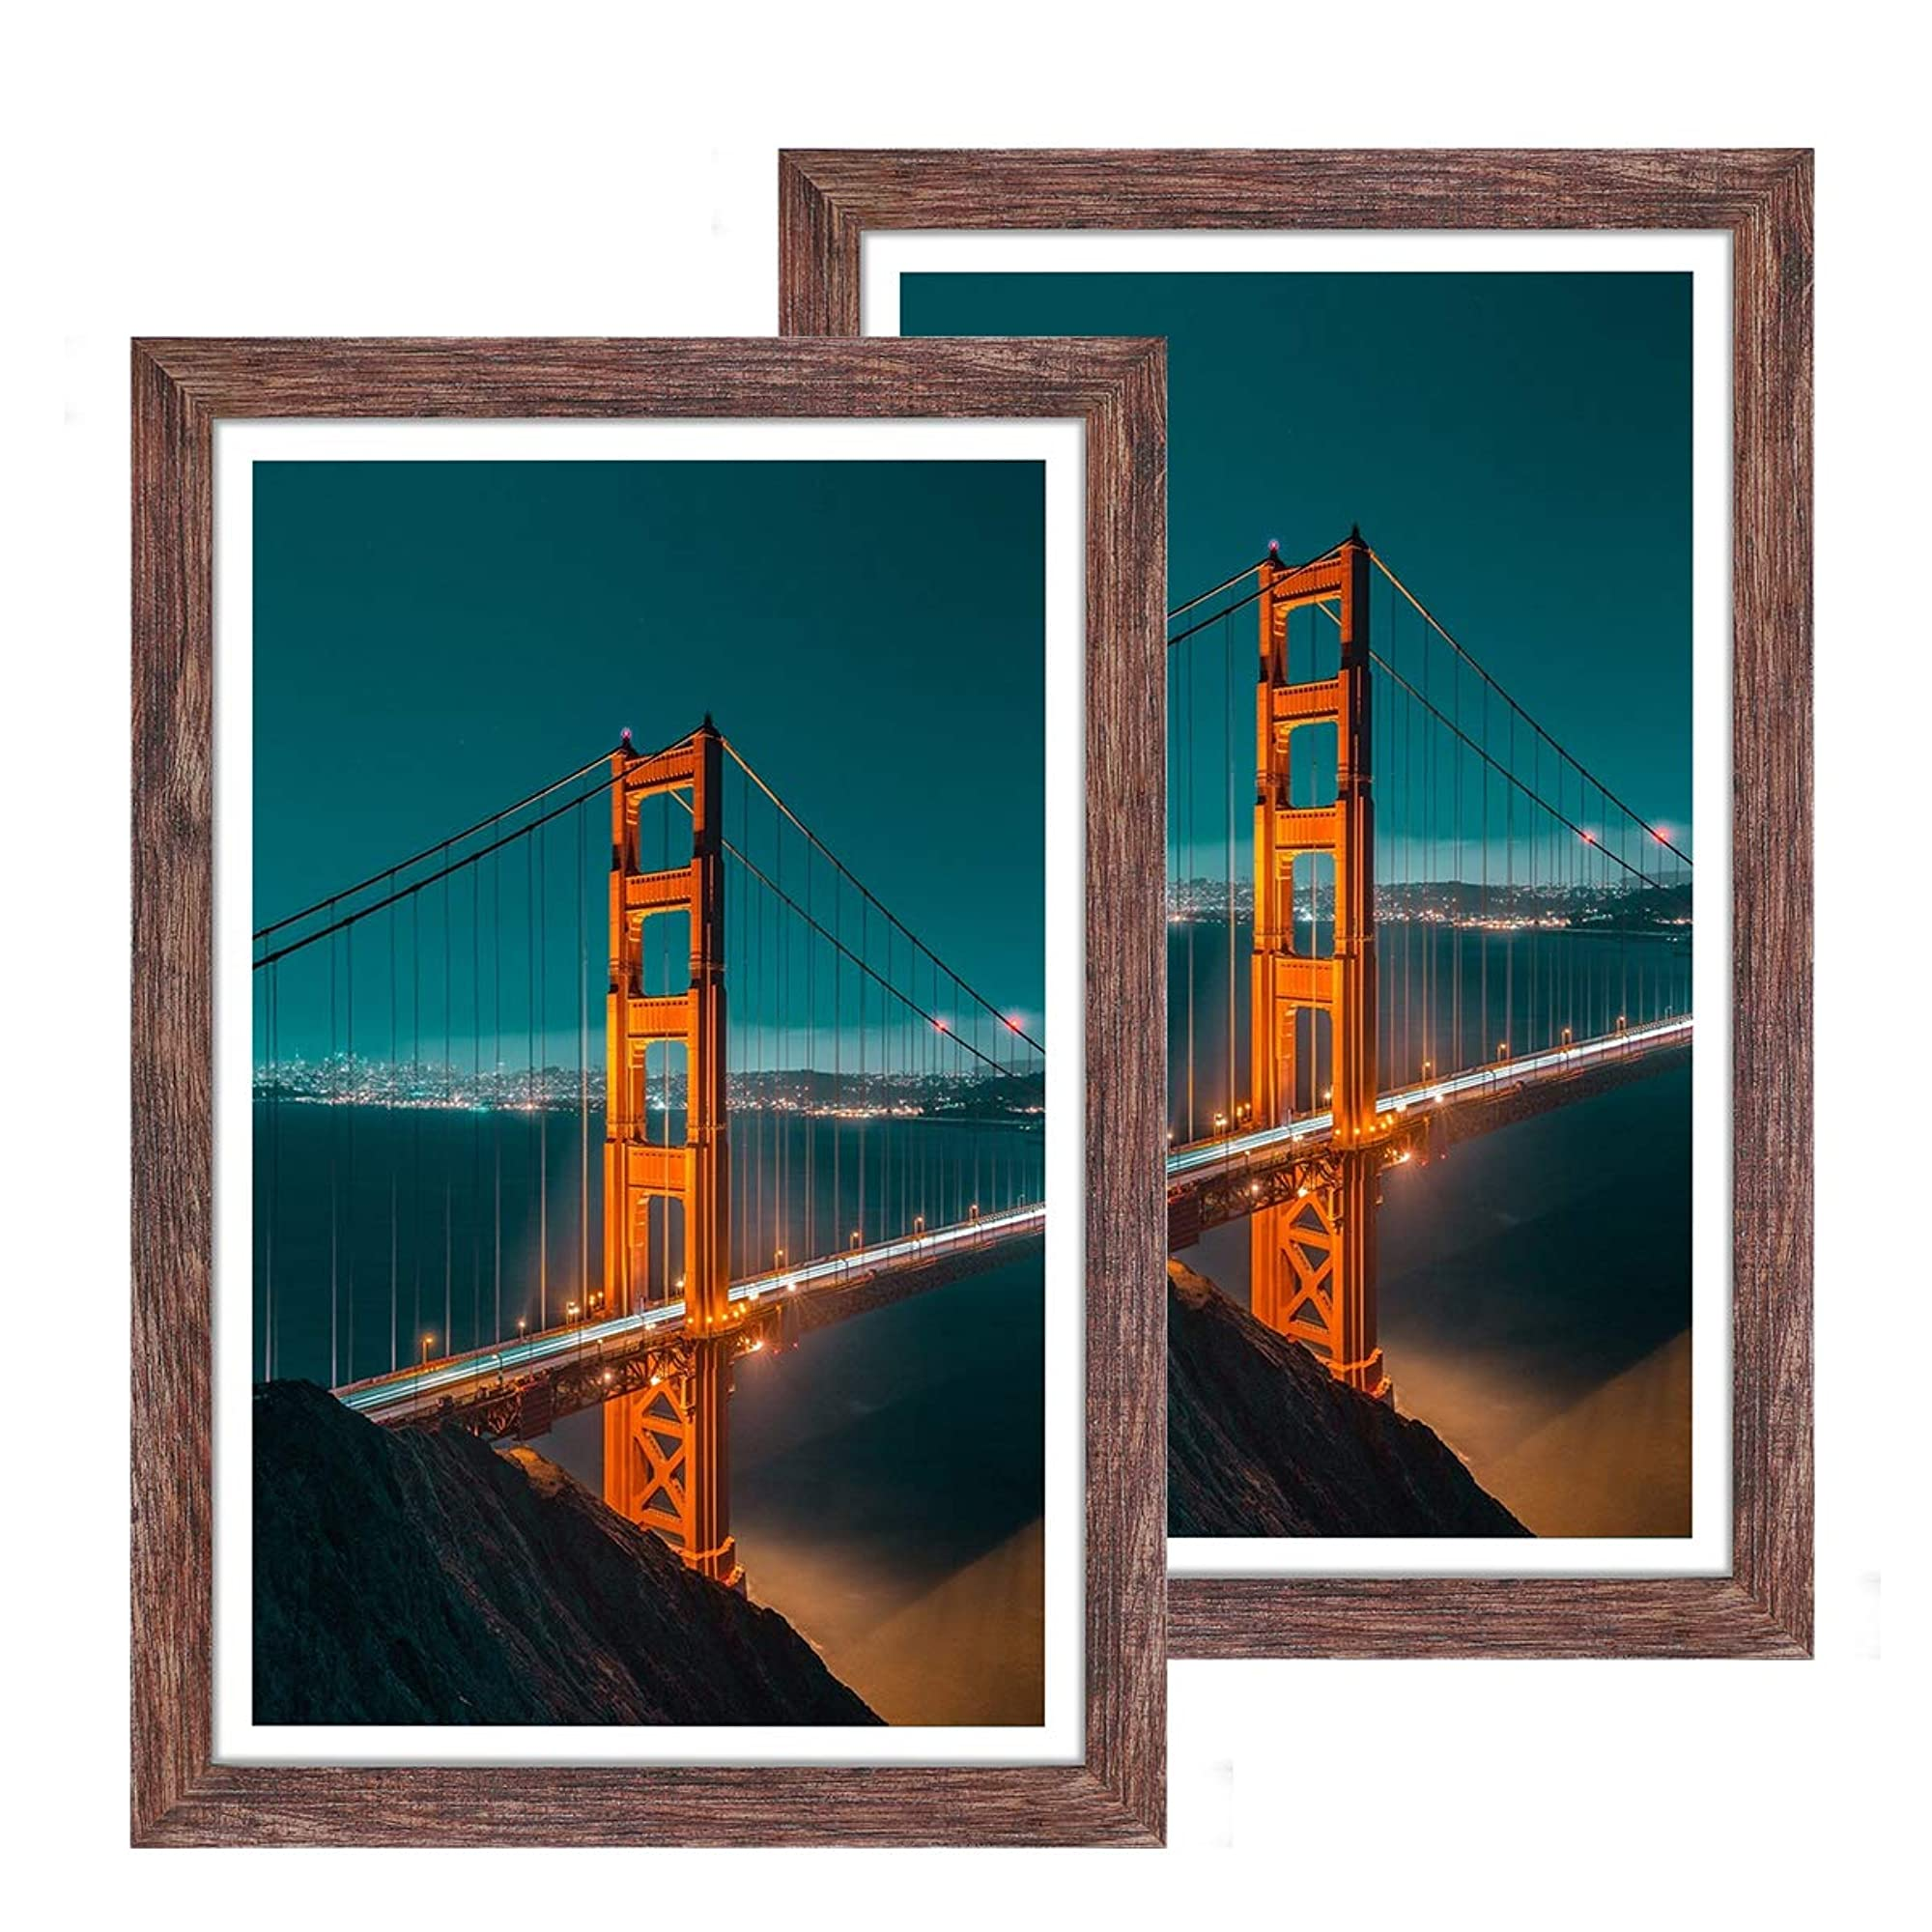 Wall Hanging Wood Picture Frame